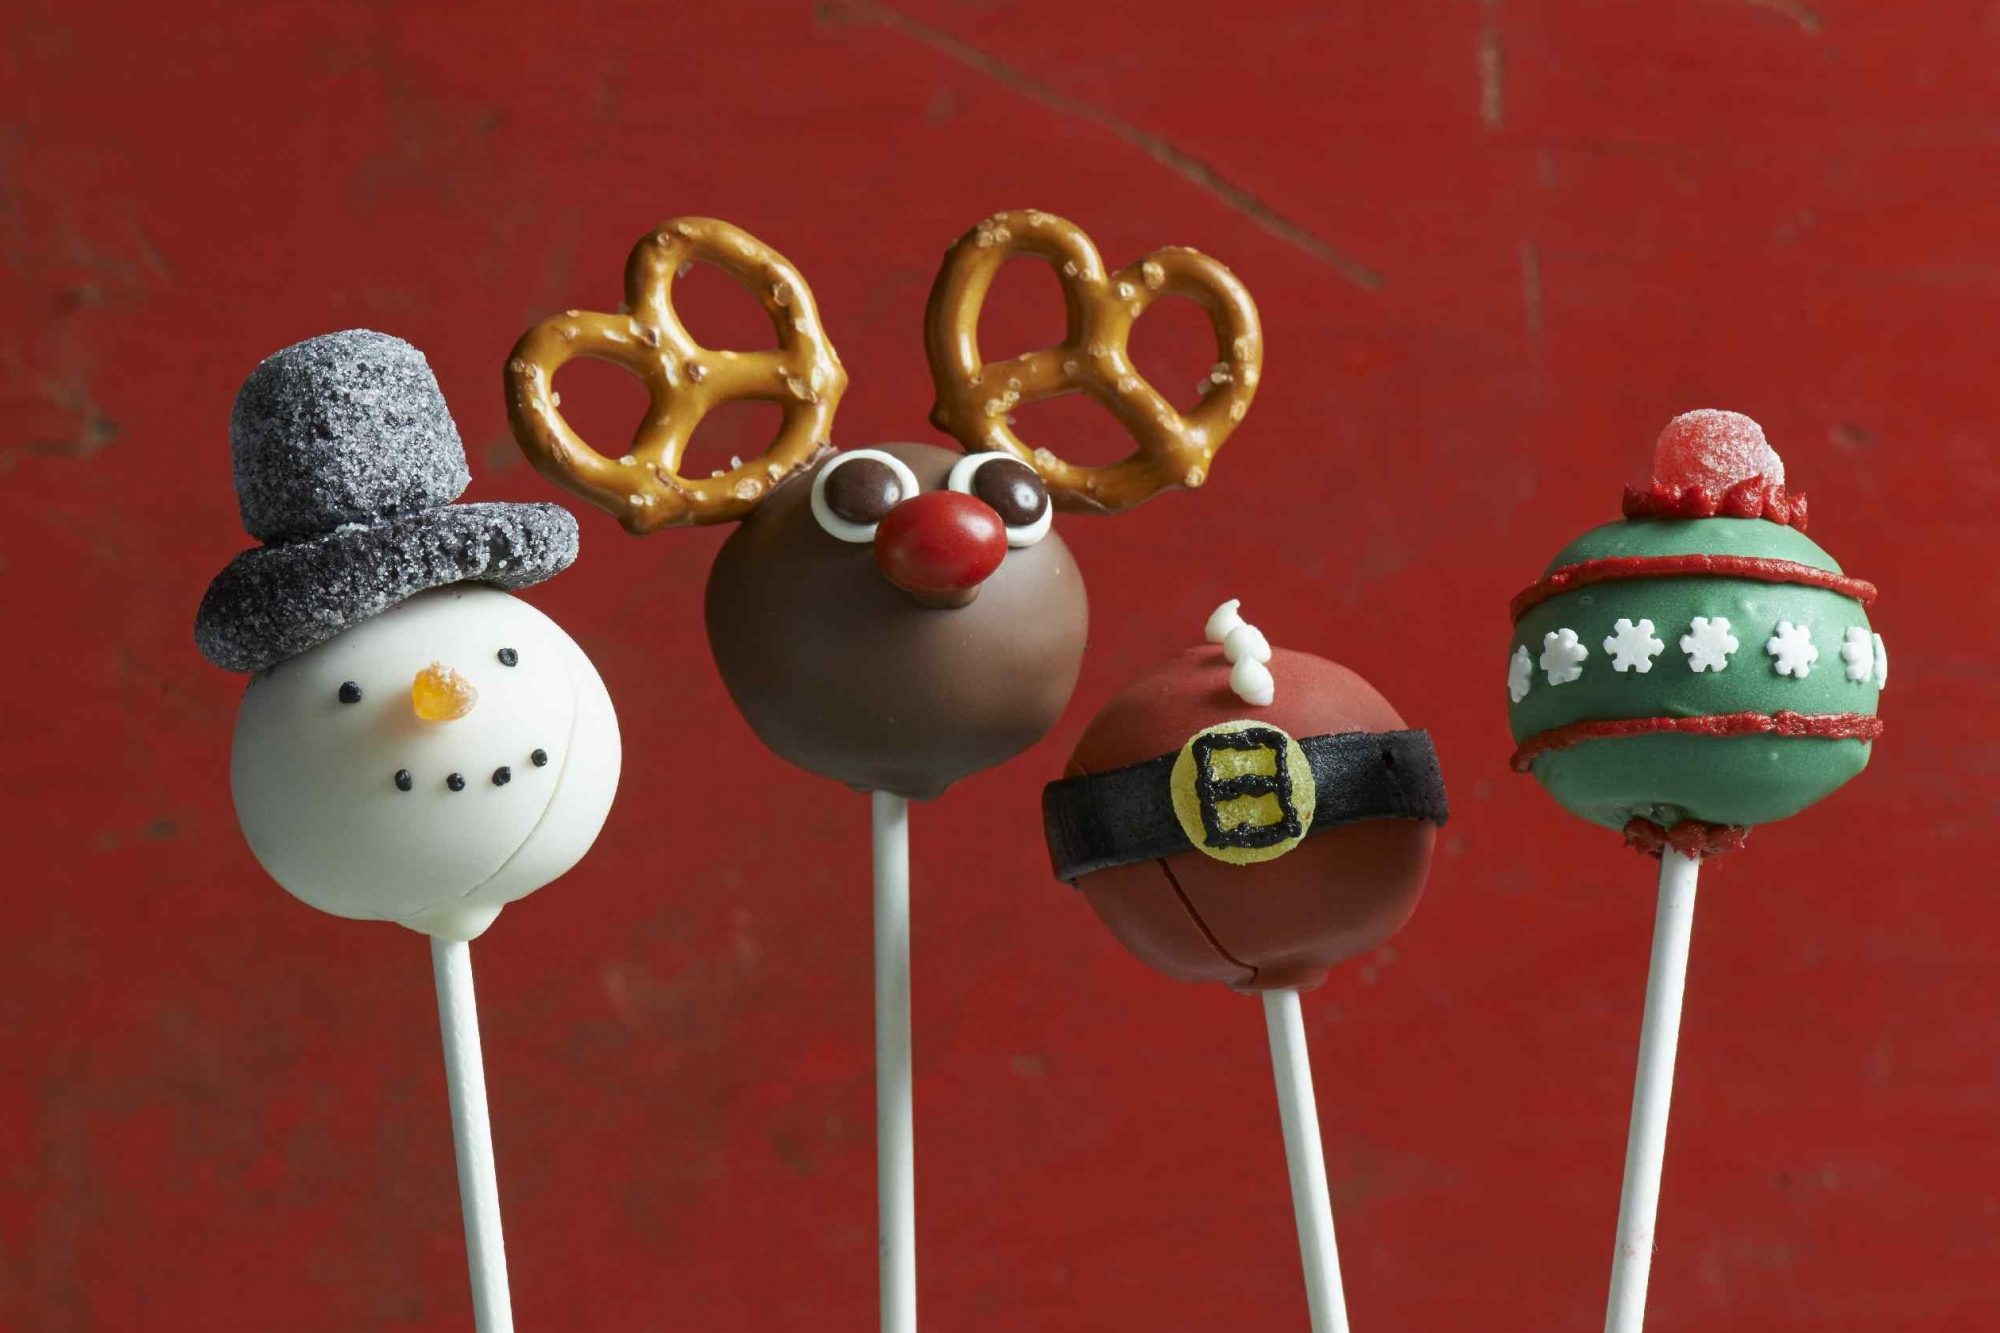 Christmas cake pops decorated to look like snow person, reindeer, Santa's tummy, and a Christmas tree ornament